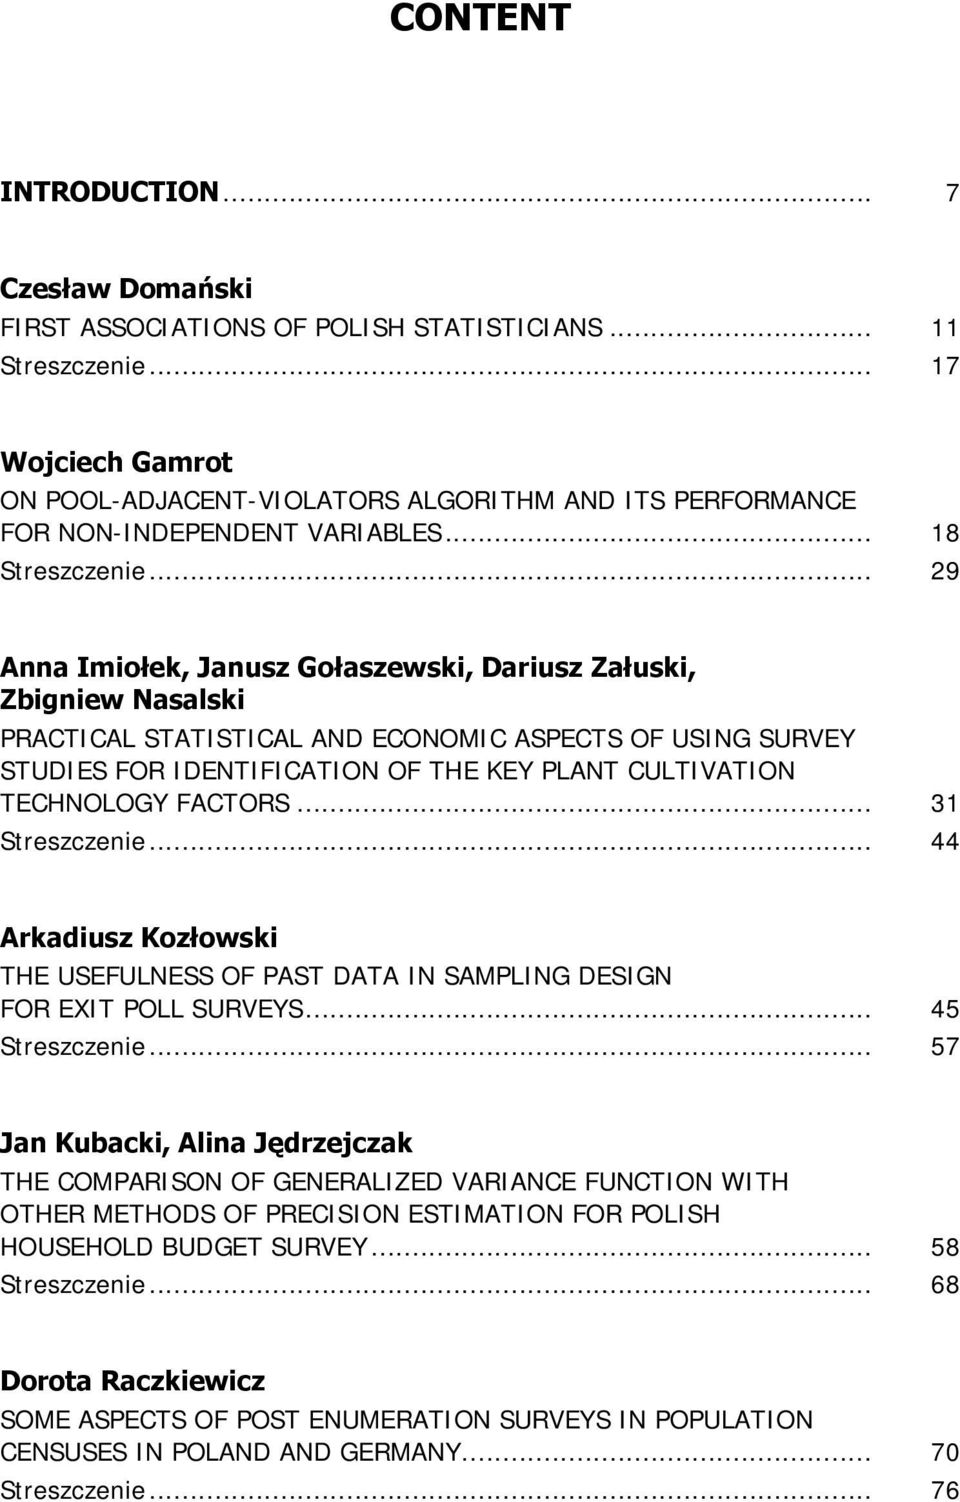 .. 9 Anna Imołe, Janusz Gołaszews, Dausz Załus, Zbgnew asals PRACTICAL STATISTICAL AD ECOOMIC ASPECTS OF USIG SURVEY STUDIES FOR IDETIFICATIO OF THE KEY PLAT CULTIVATIO TECHOLOGY FACTORS.